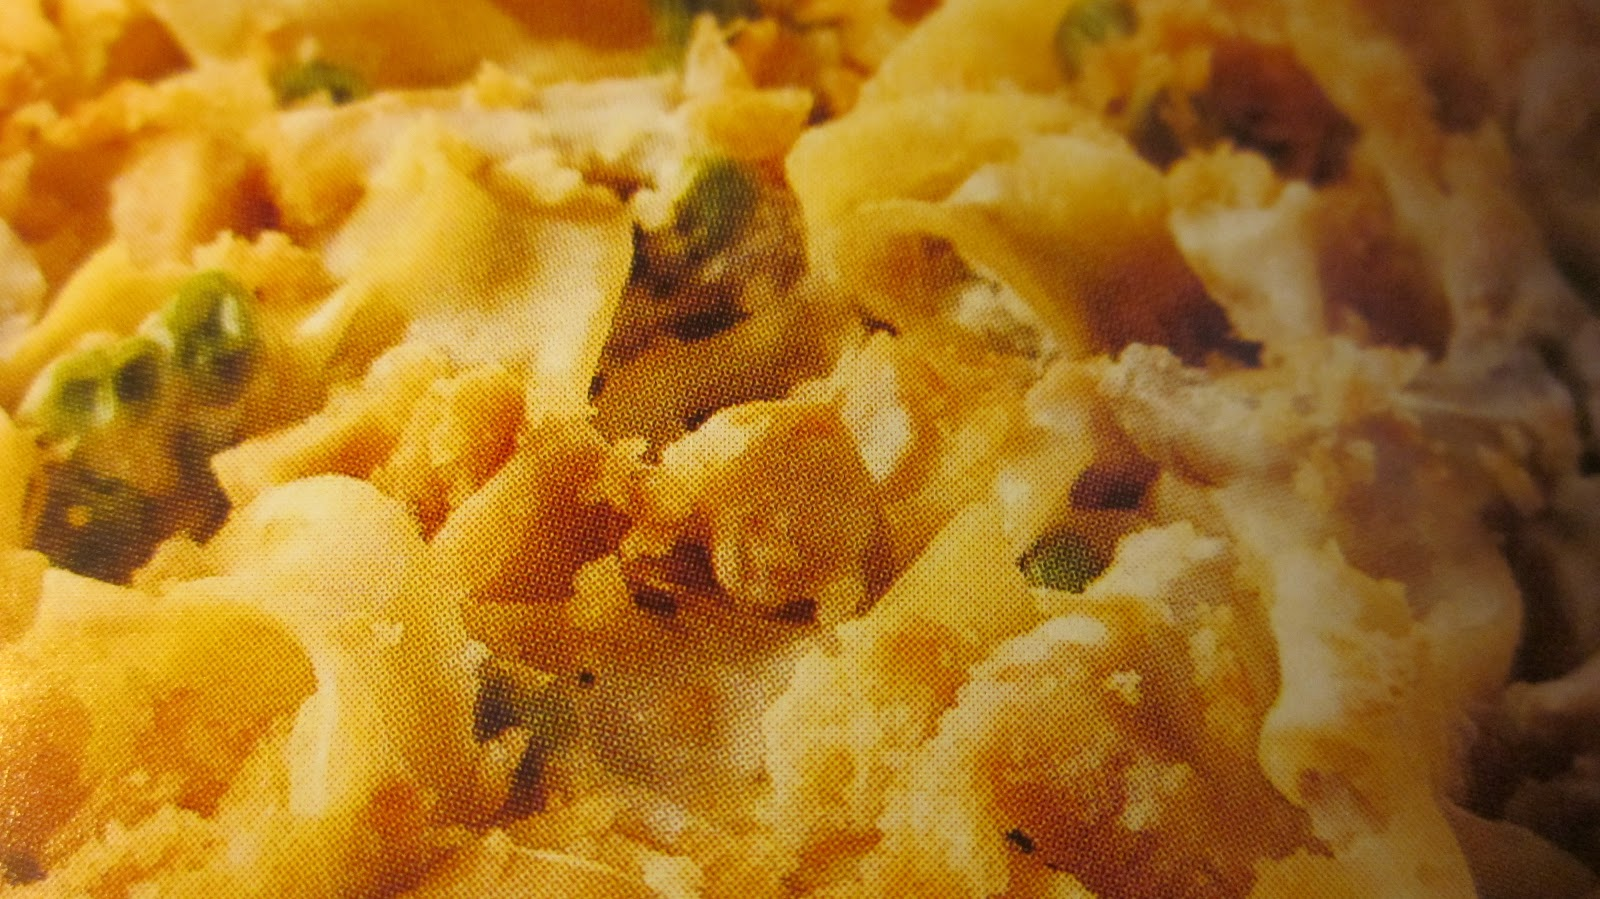 QUICK FIX RECIPES: CREAMY TUNA NOODLE CASSEROLE